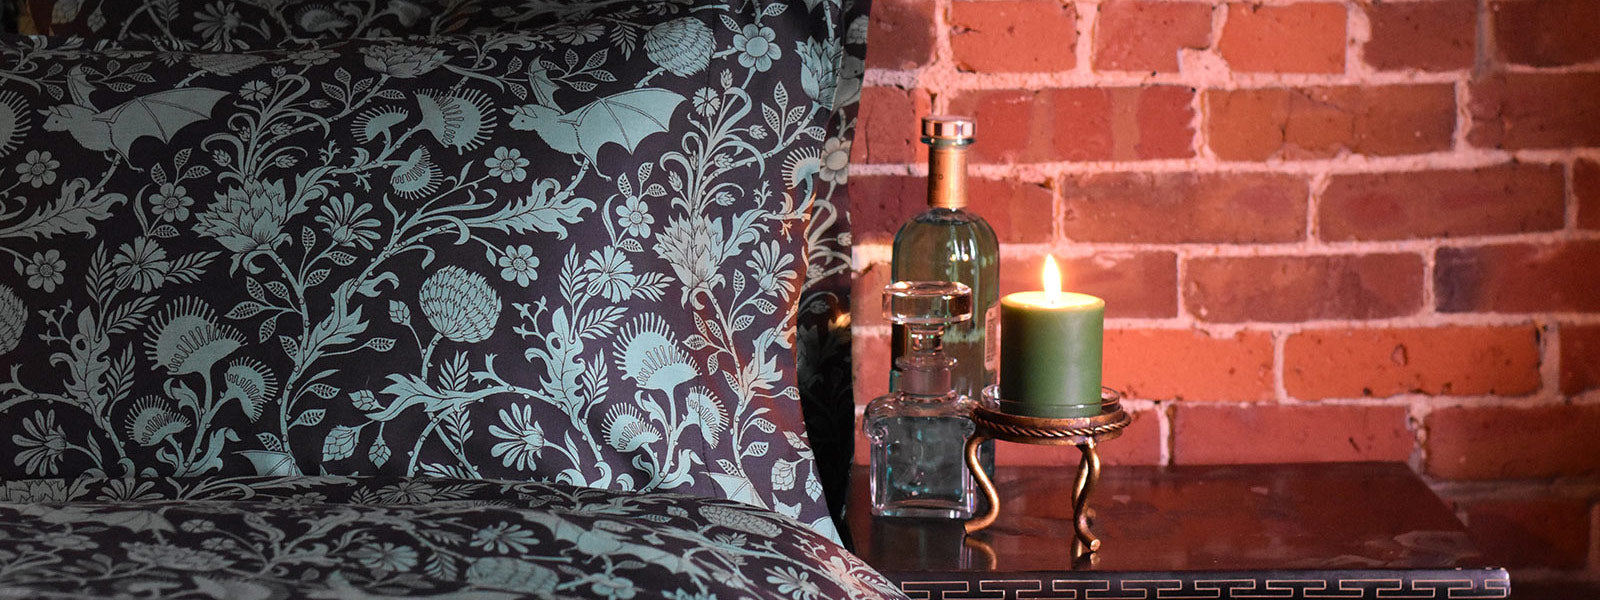 Weave the spirit of Absinthe into your home.